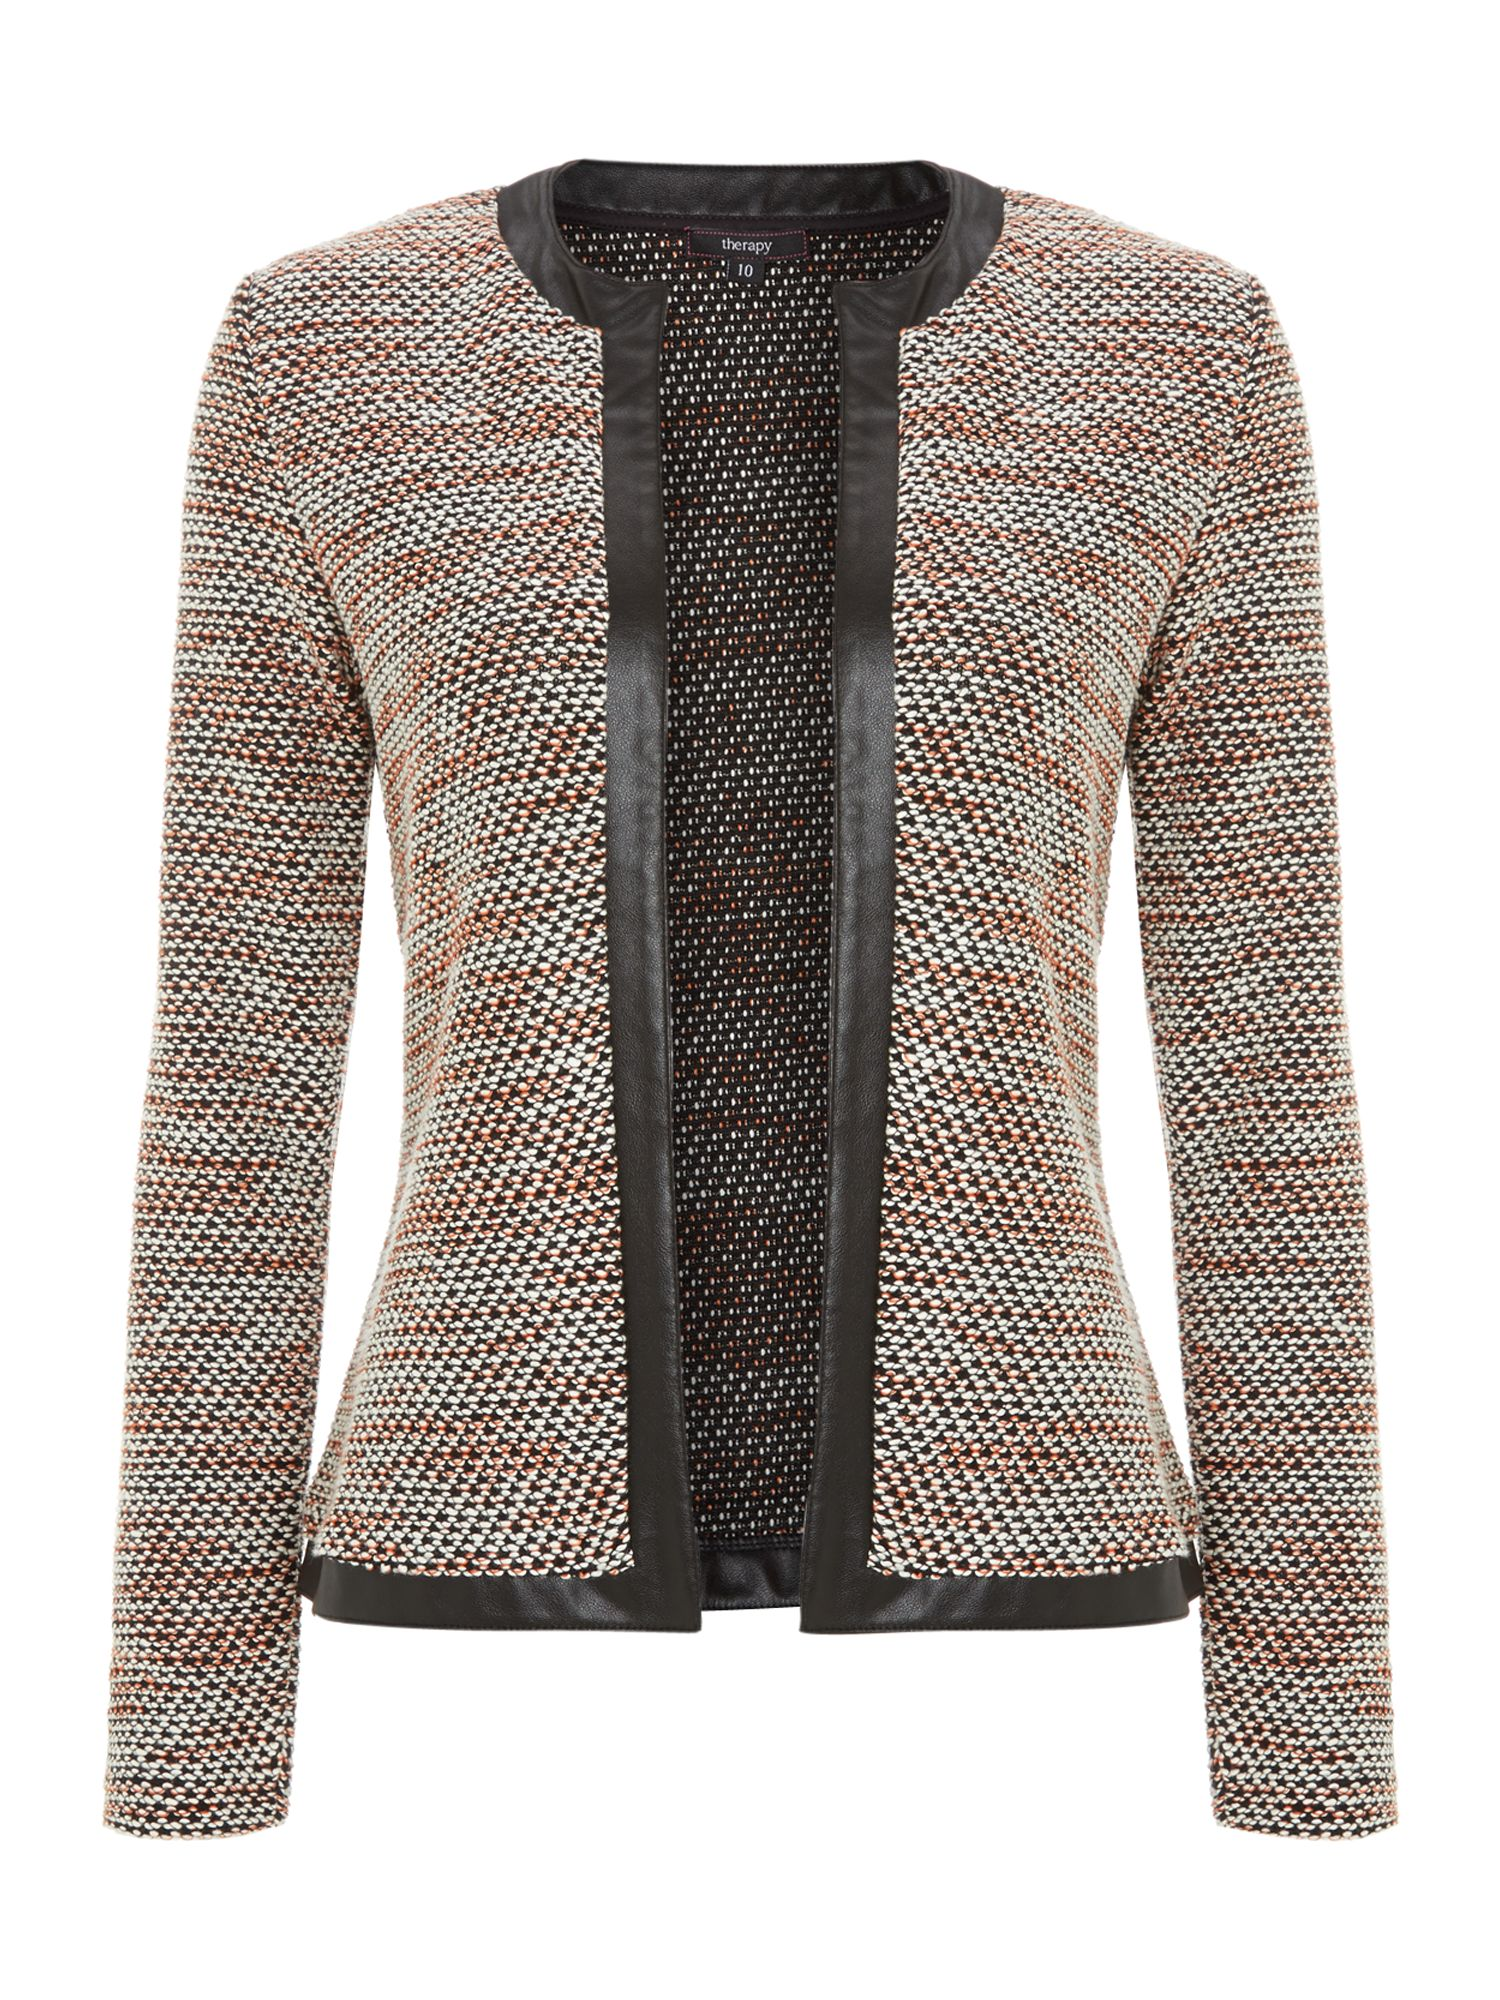 Multi coloured textured boucle jacket